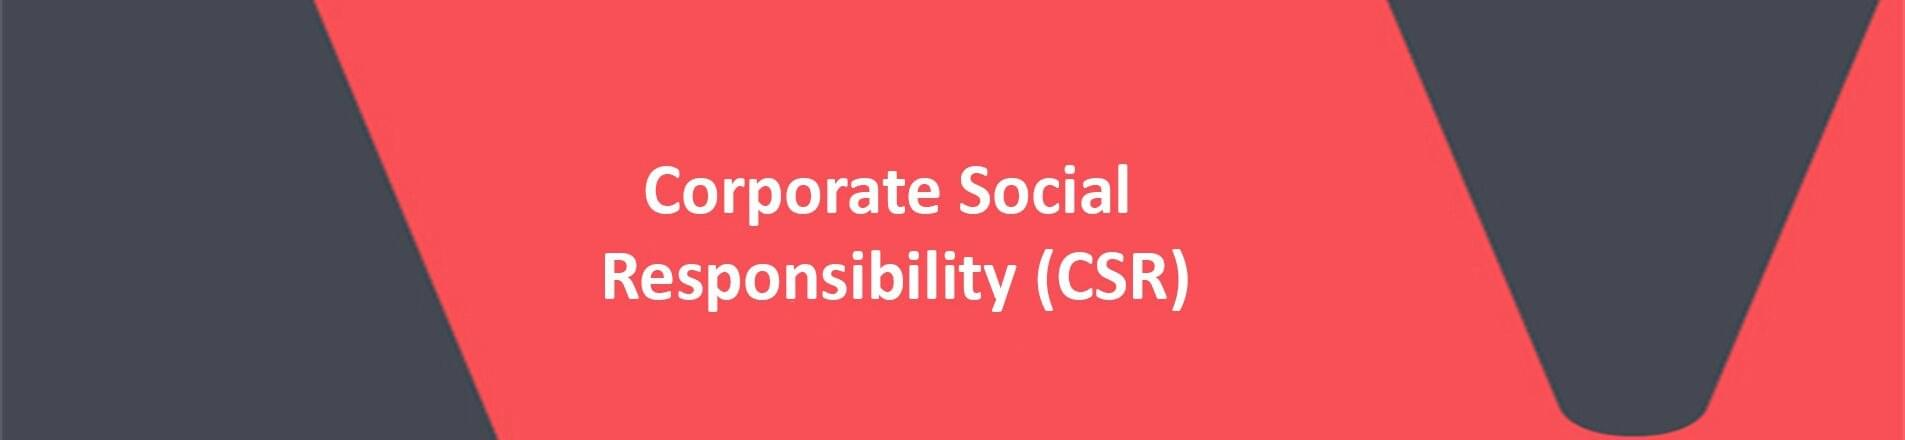 Red background with text in white spelling Corporate Social Responsibility.